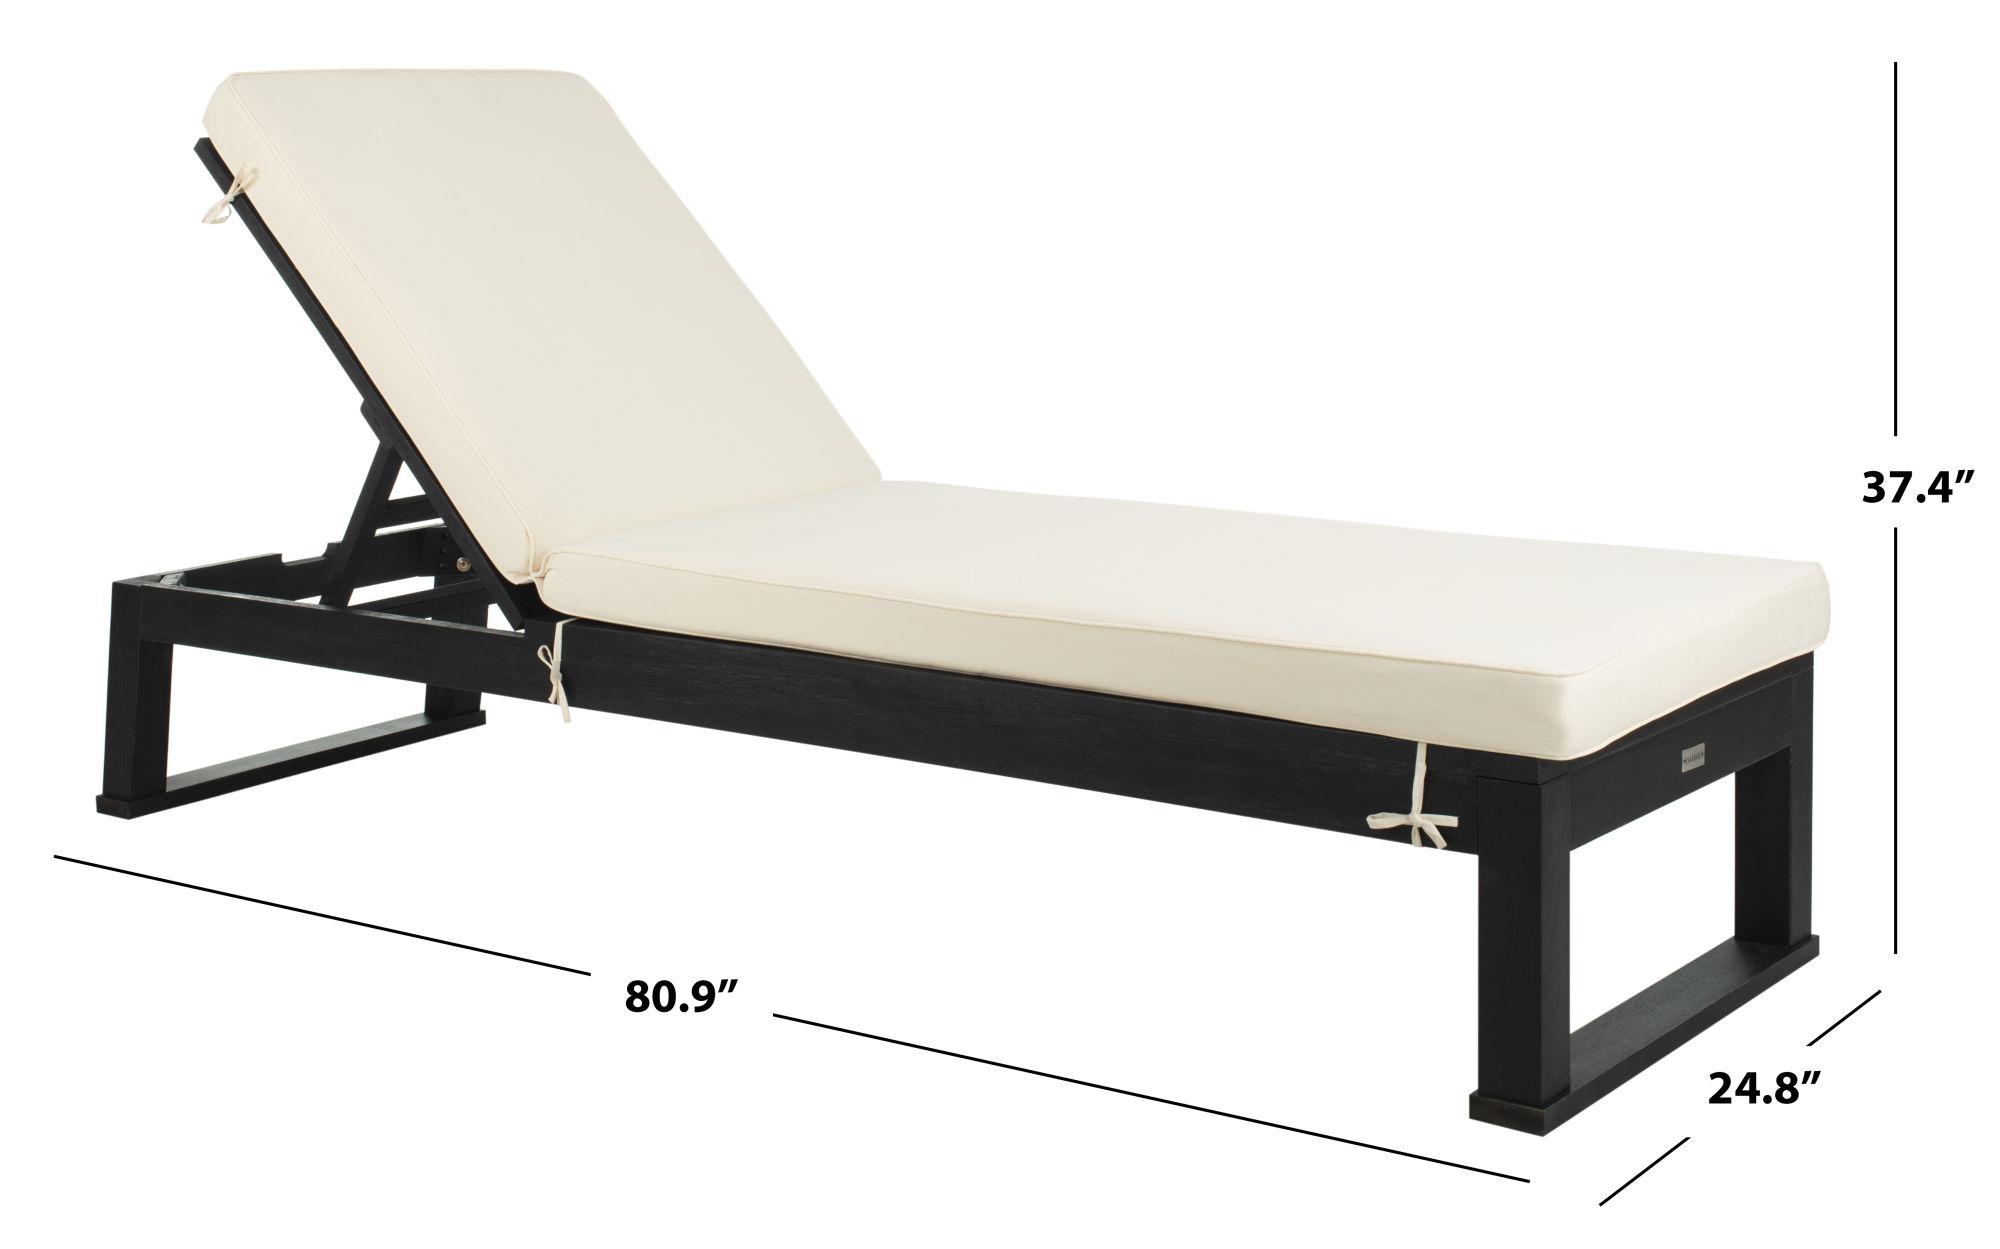 Solano Sunlounger on Safavieh Outdoor Living Solano Sunlounger id=25786